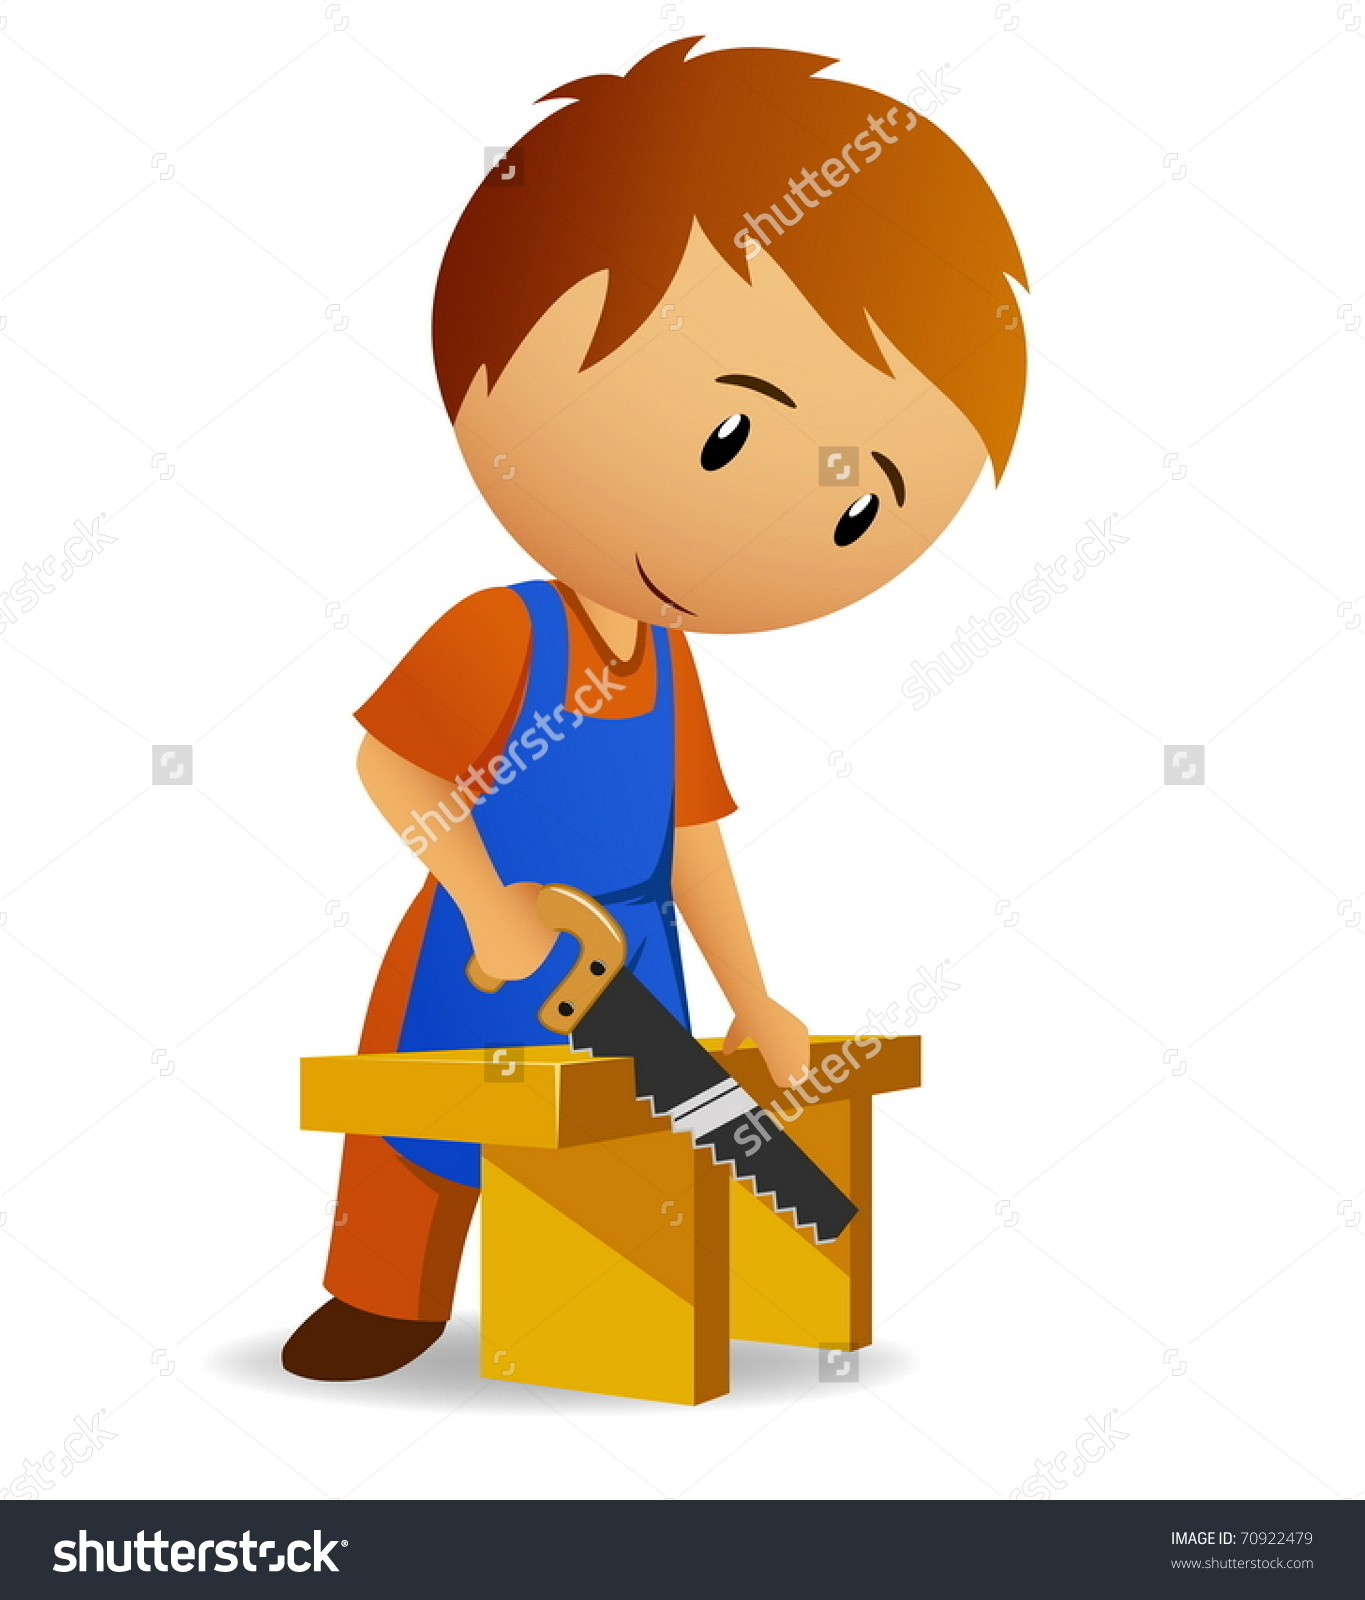 Wood cutting clipart - Clipground